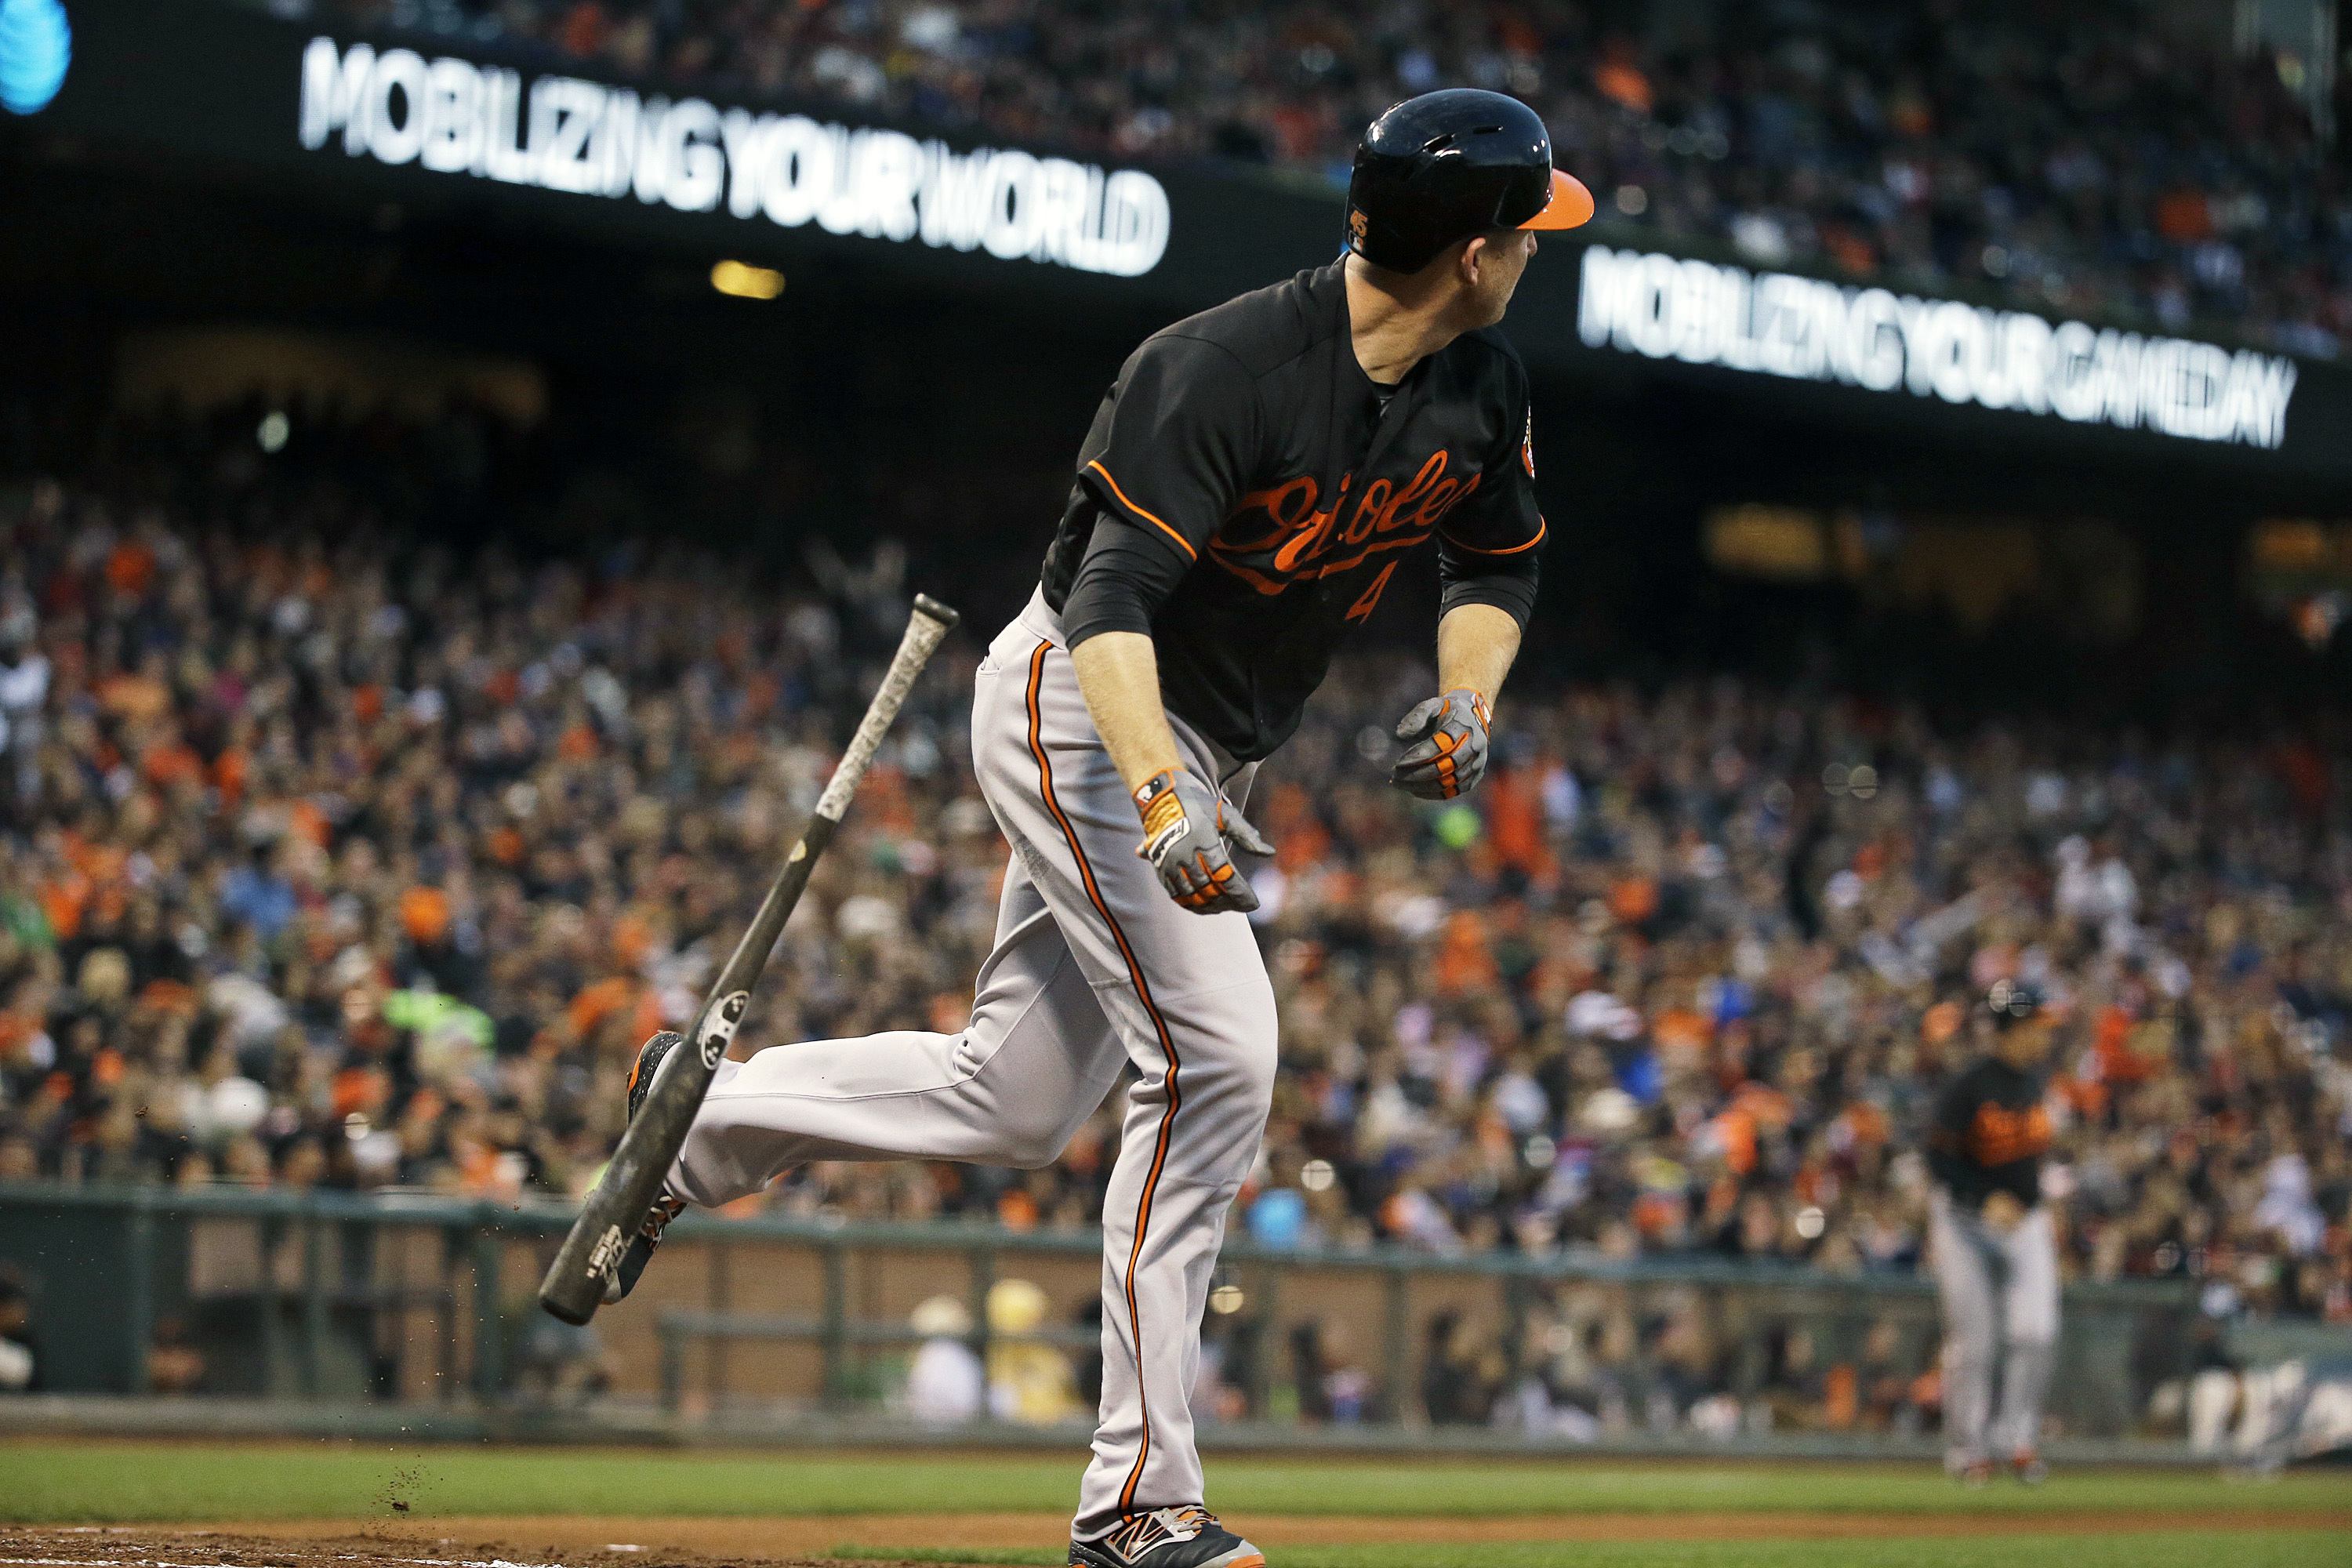 Baltimore Orioles' Mark Trumbo watches his two-run home run off San Francisco Giants starting pitcher Matt Cain in the third inning of a baseball game Friday, Aug. 12, 2016, in San Francisco. (AP Photo/Eric Risberg)